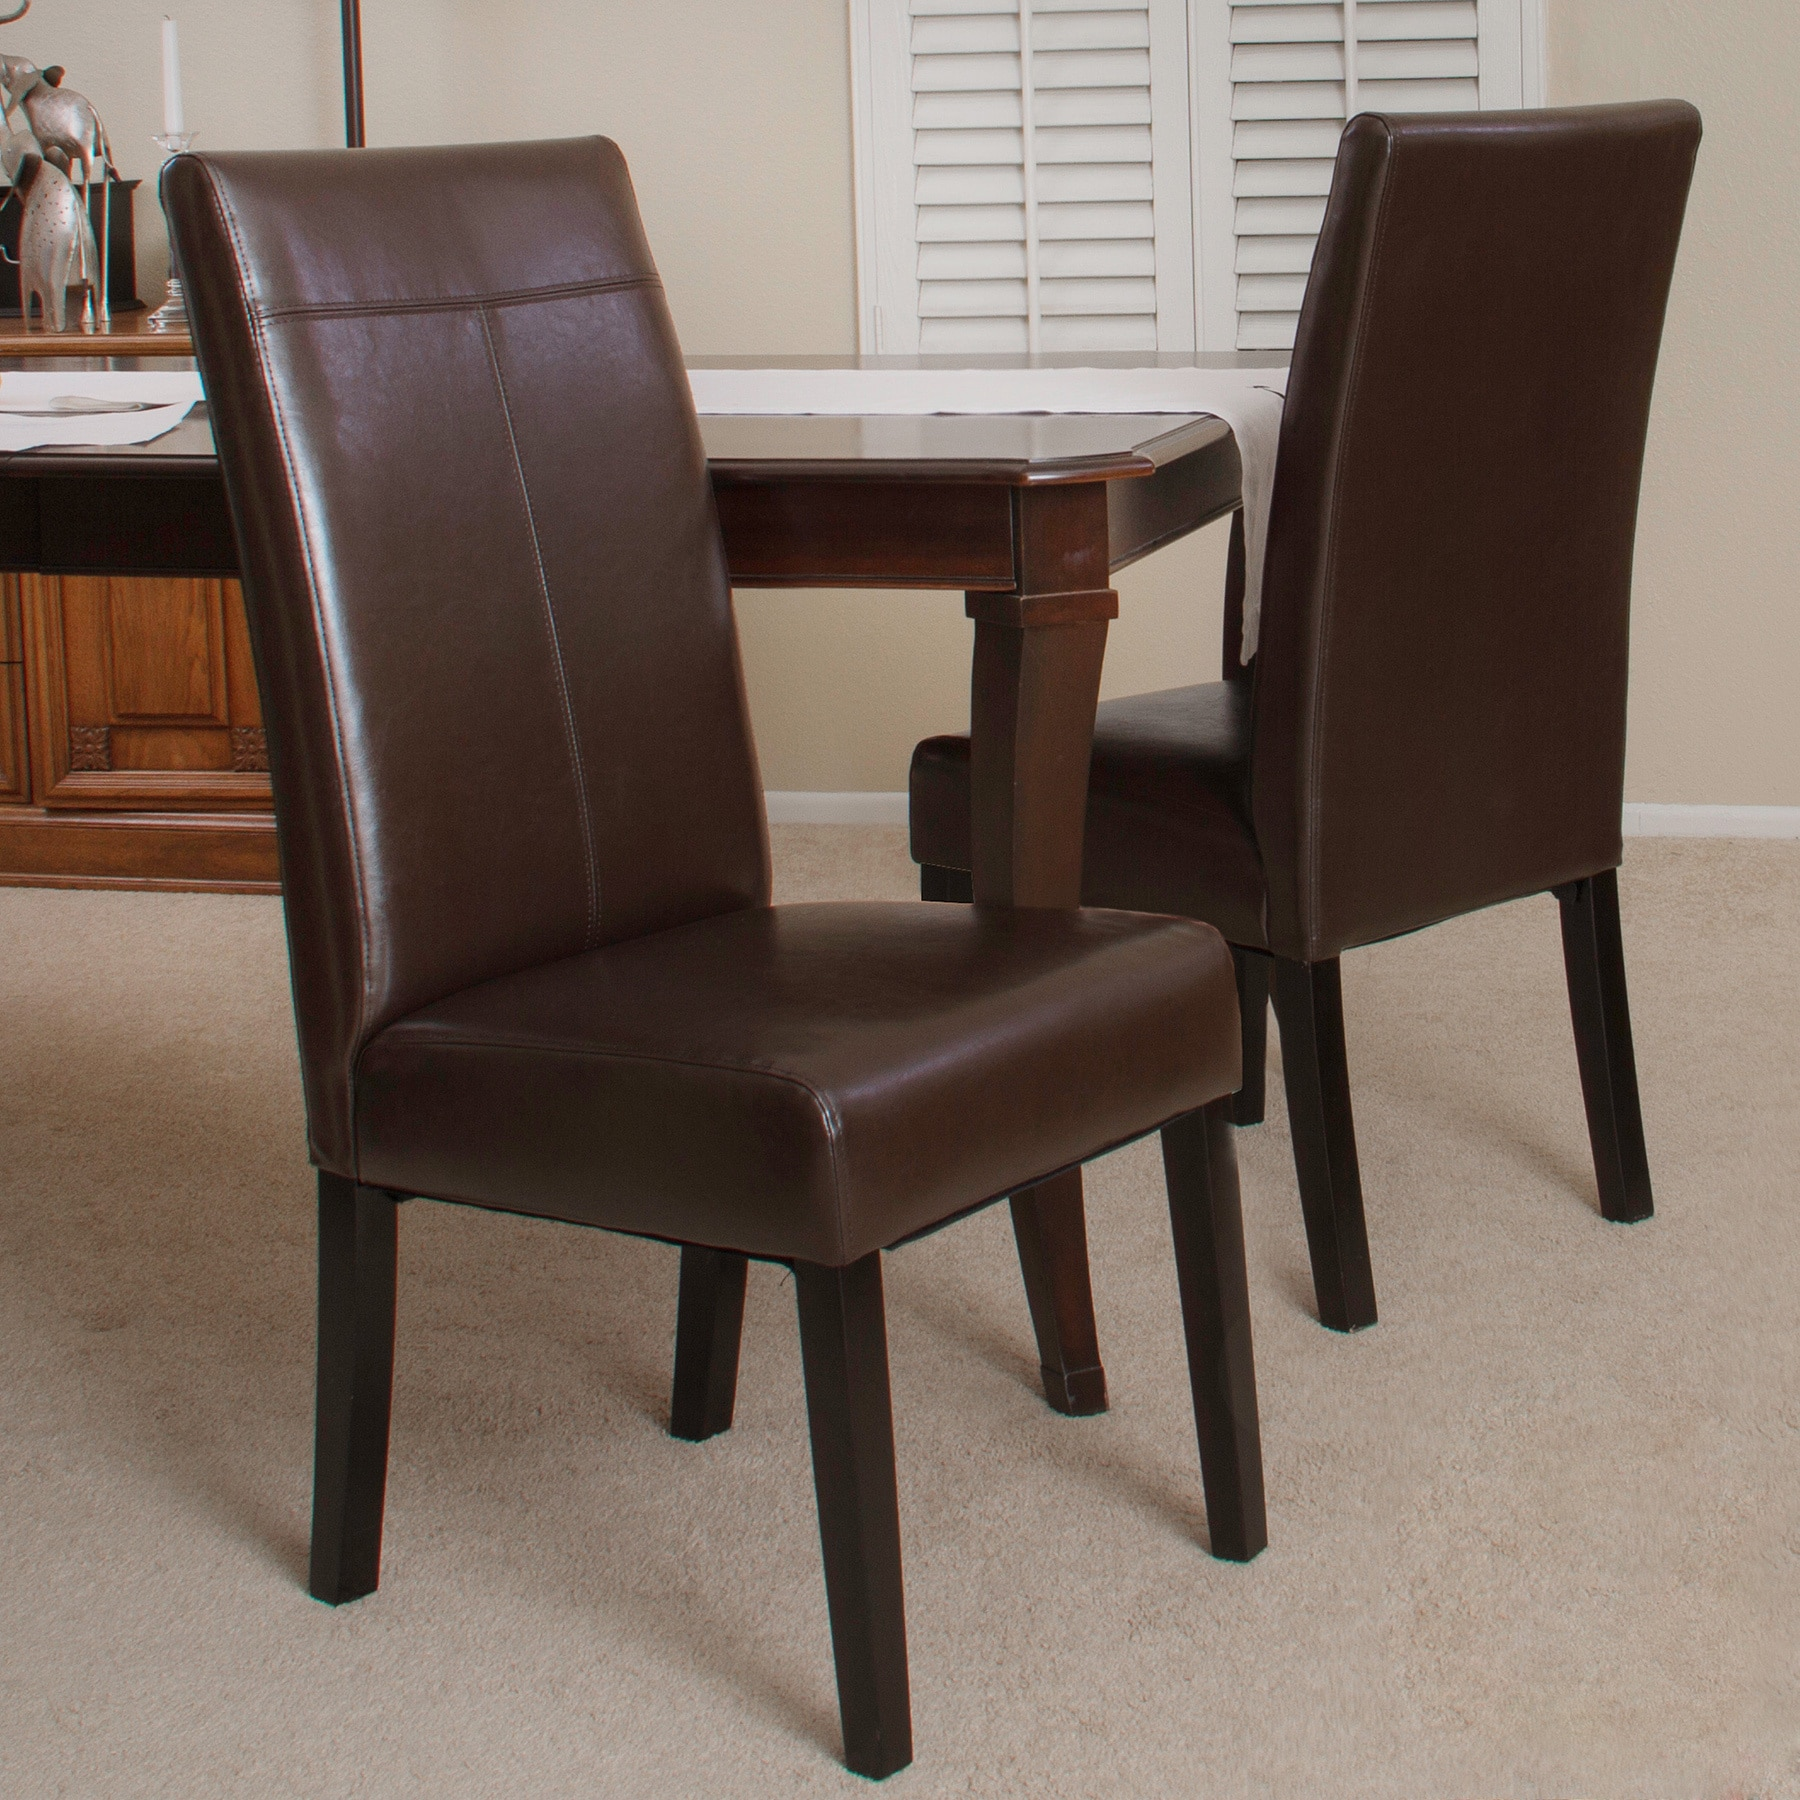 Christopher Knight Home Lissa Chocolate Brown PU Dining